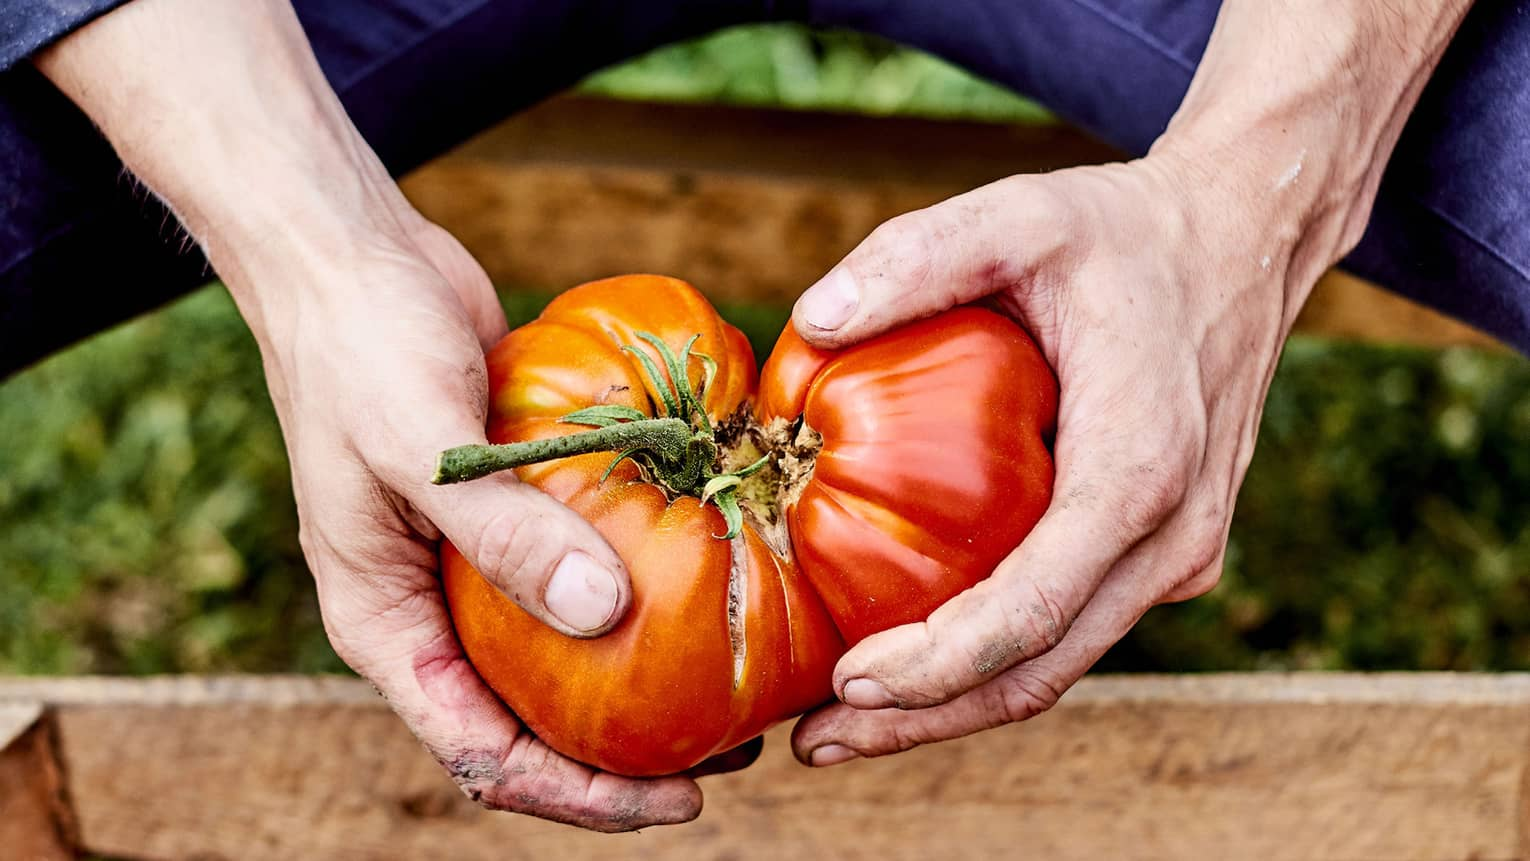 close up of hands holding two large red tomatoes over a wooden crate of tomatoes